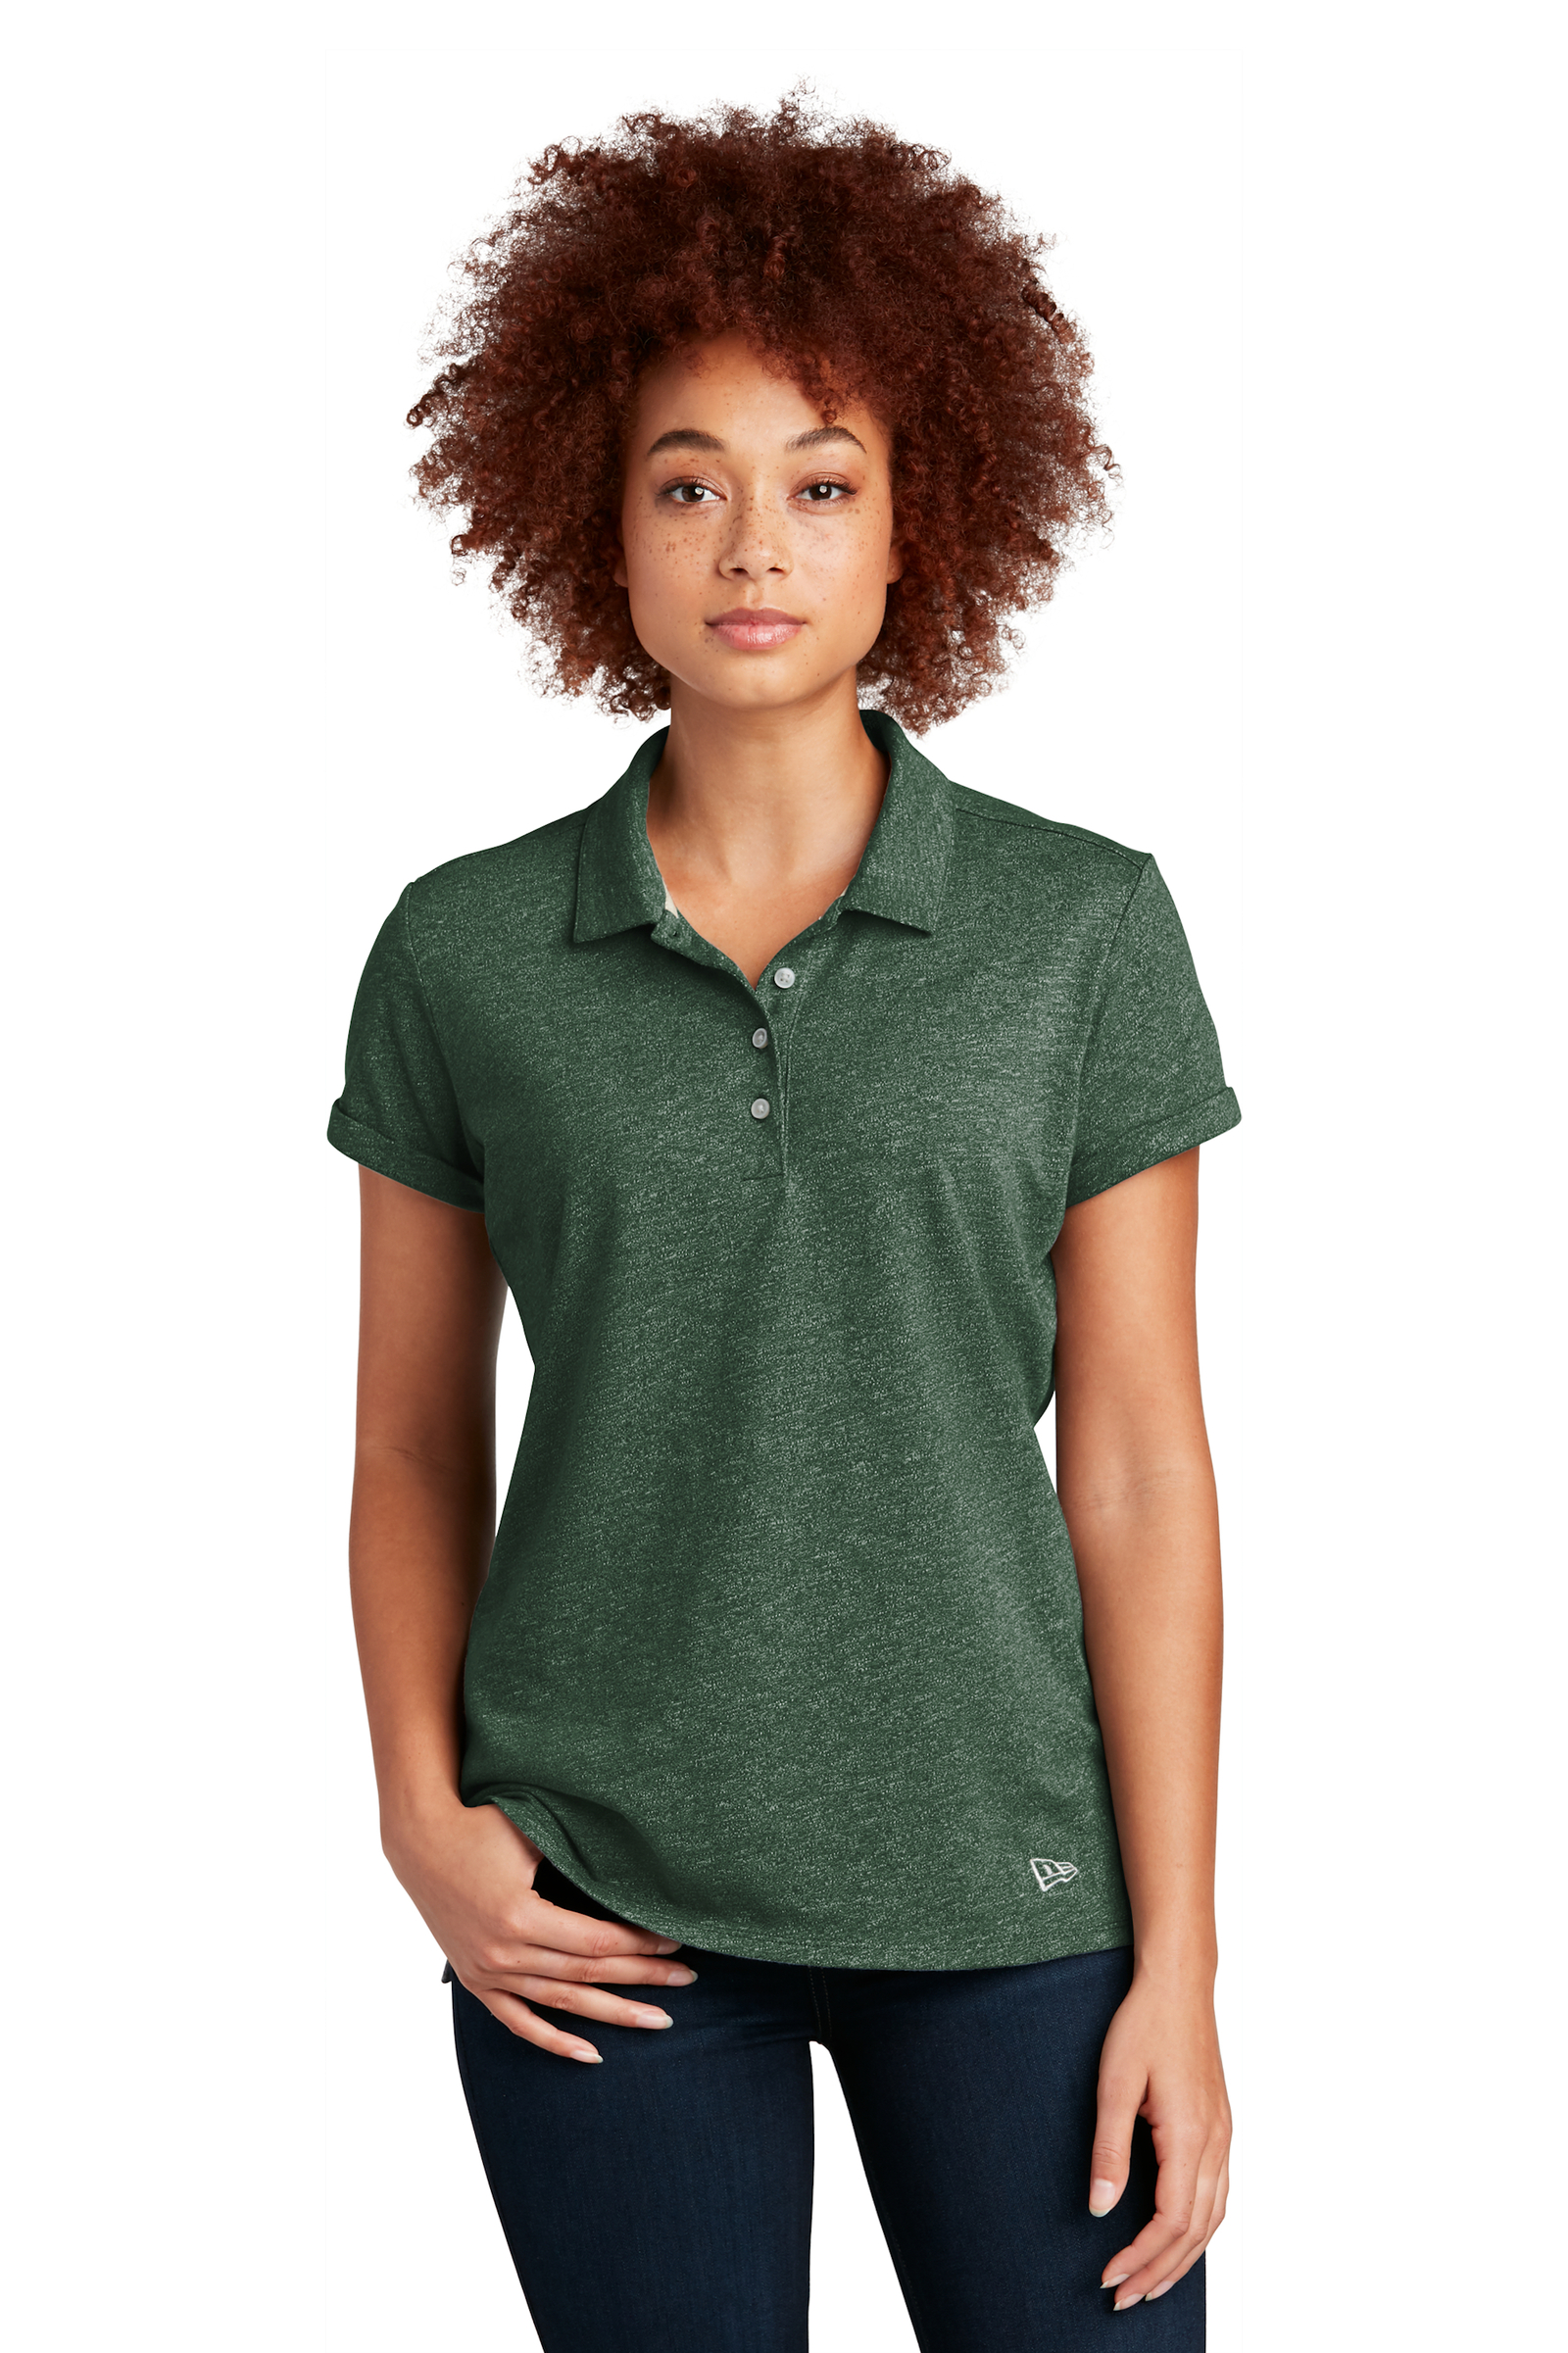 New Era Embroidered Women's Slub Twist Polo